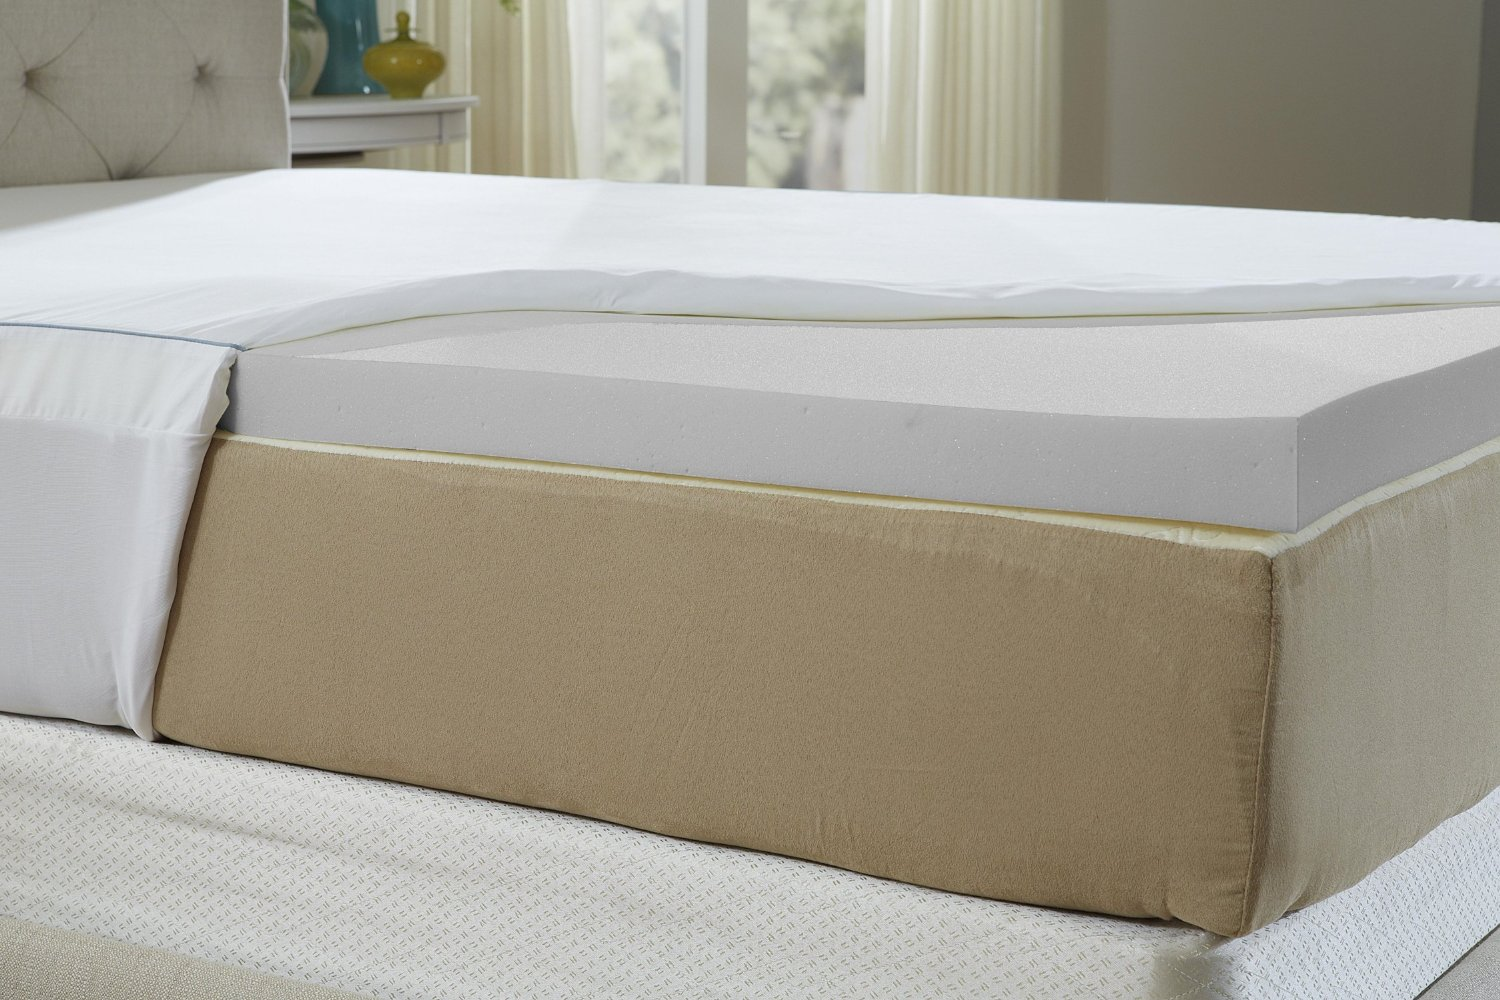 Natures Sleep Cool IQ King Size 2.5 Inch Thick, 4.5 Pound Density Memory  Foam Mattress Topper with 18 Inch Fitted Cotton Cover: $219.99, Amazon